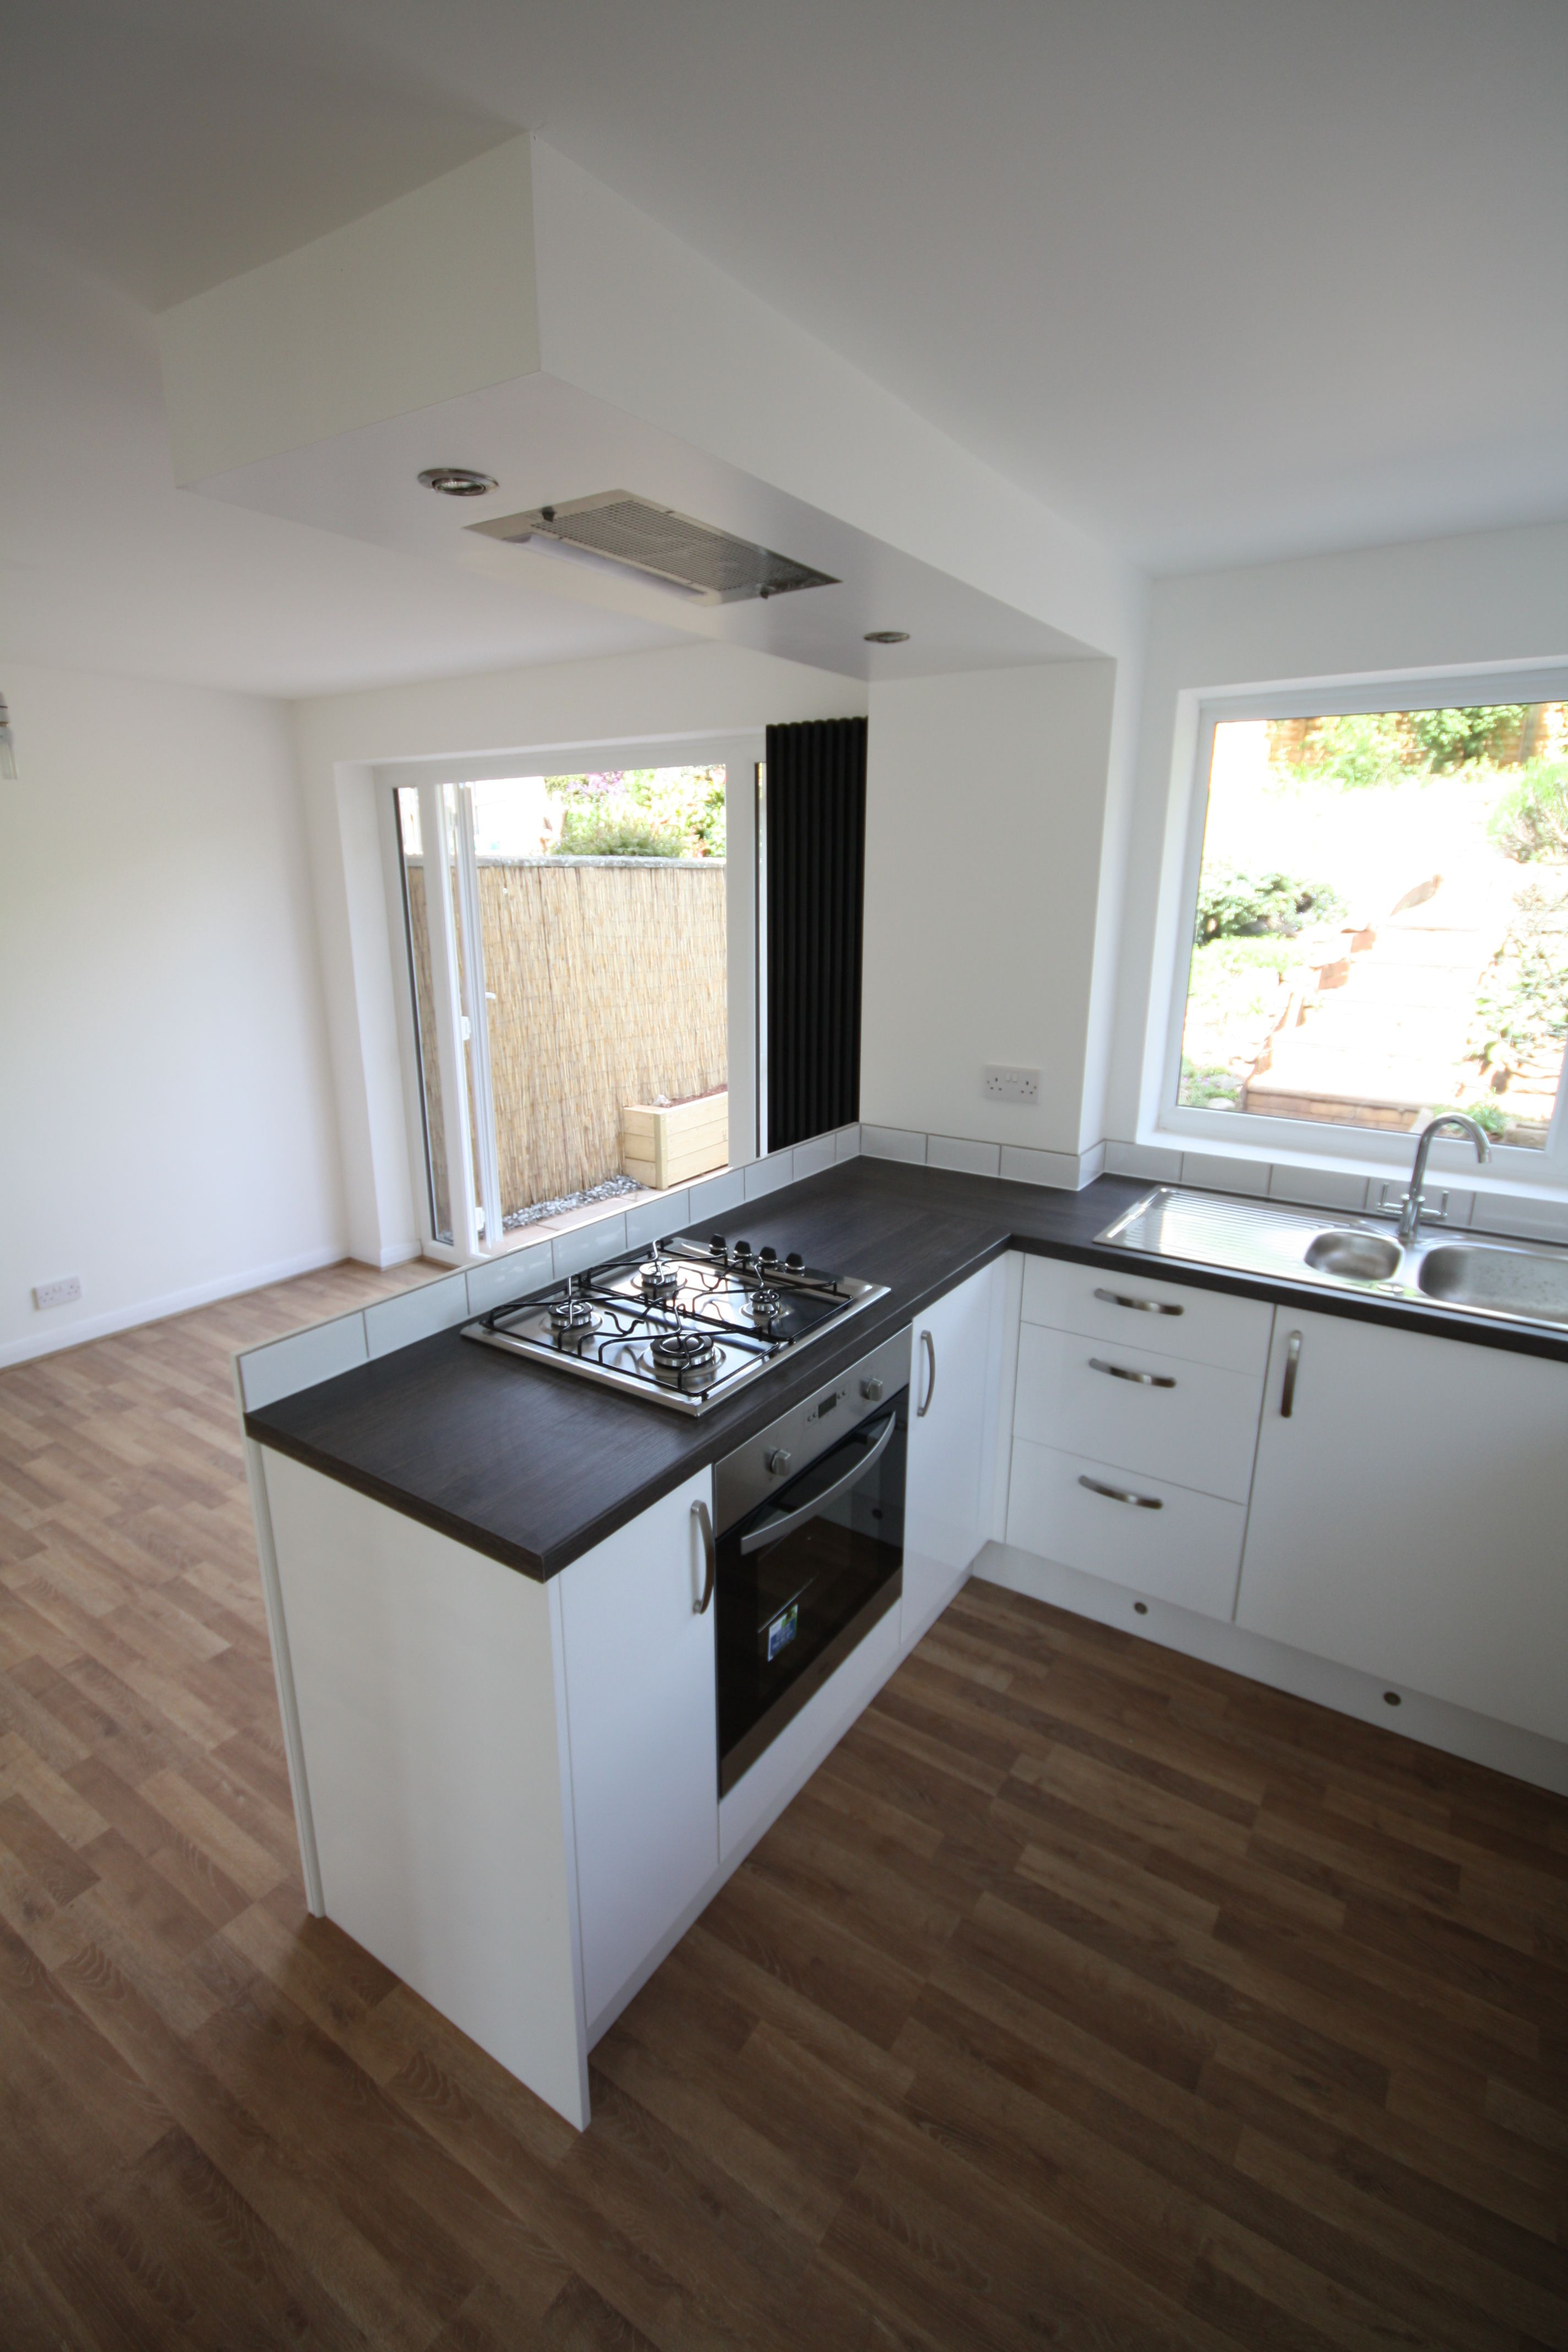 gloss white kitchen peninsular units with flush ceiling extractor